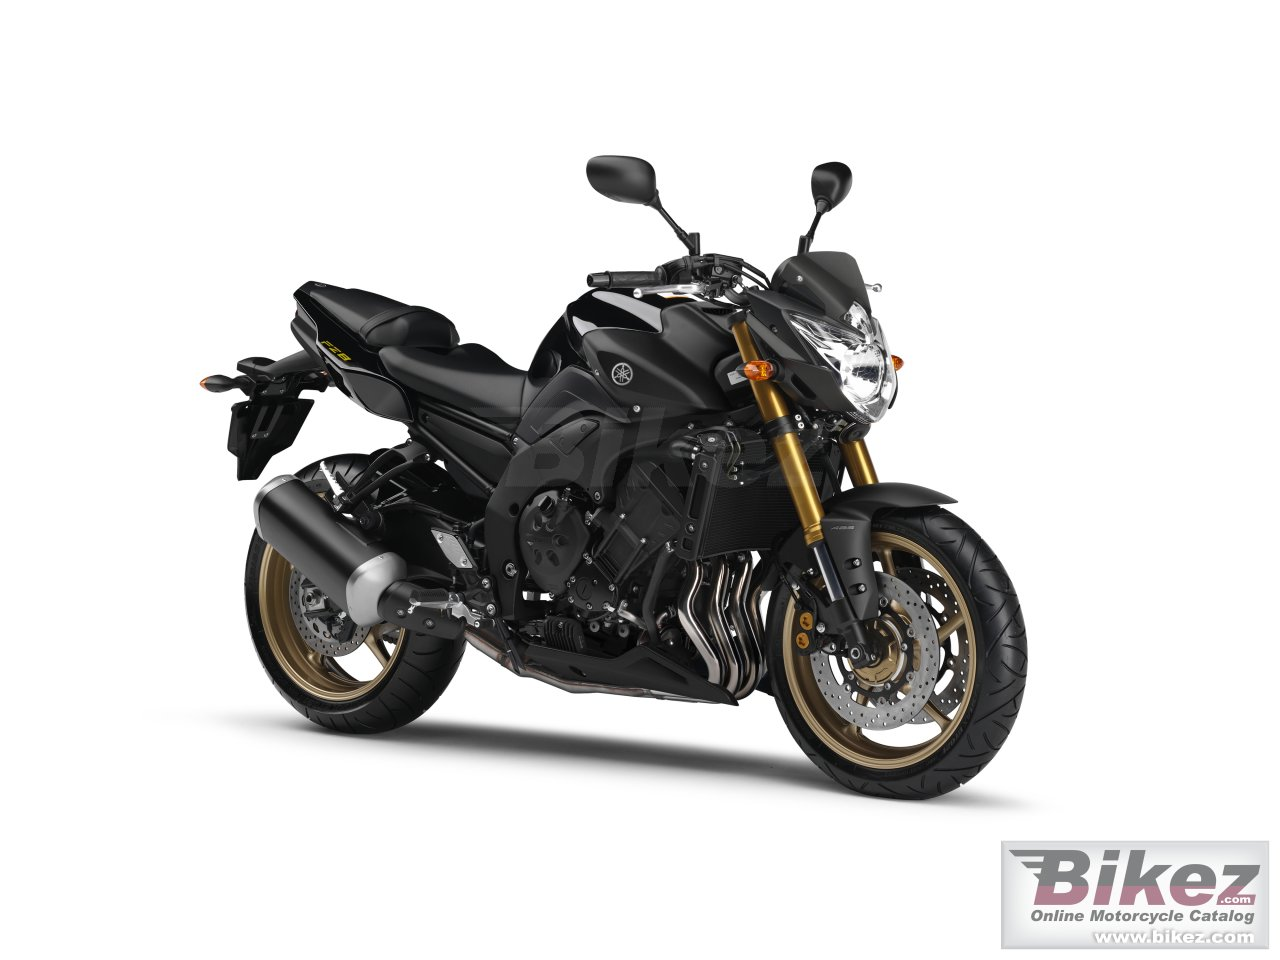 Big Yamaha fz8 picture and wallpaper from Bikez.com